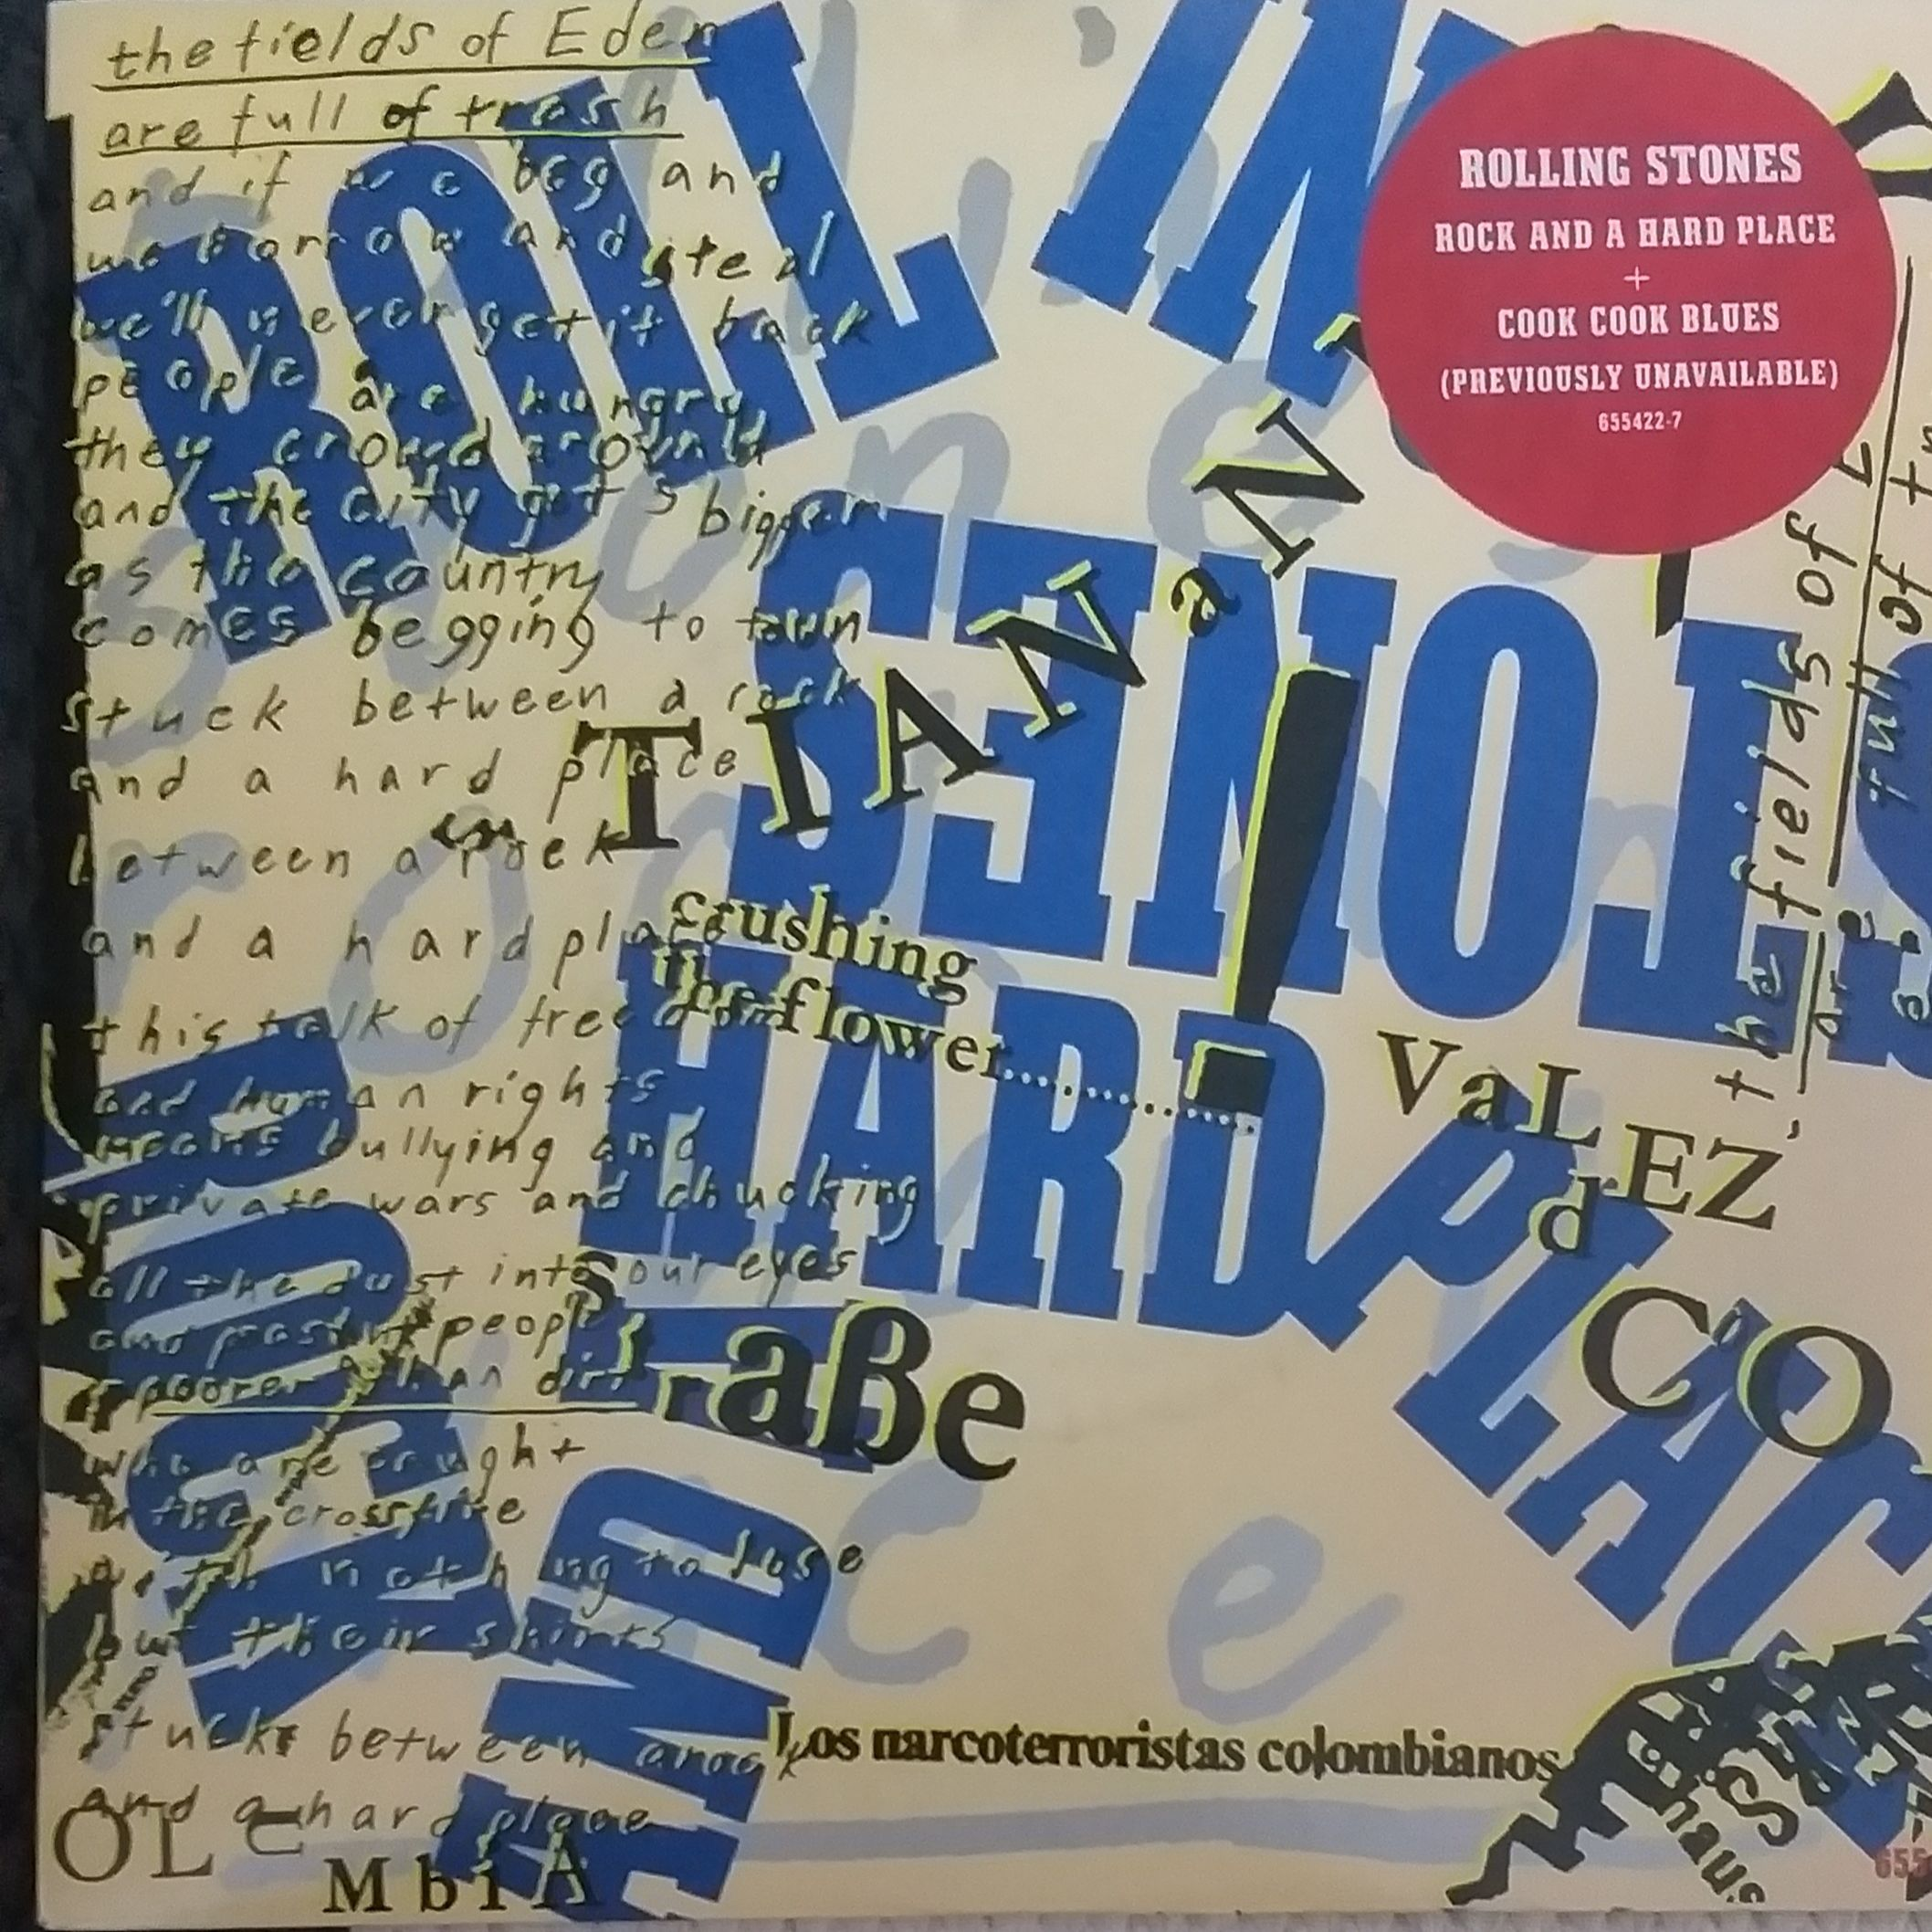 The Rolling Stones Rock and a hard place LP undefined